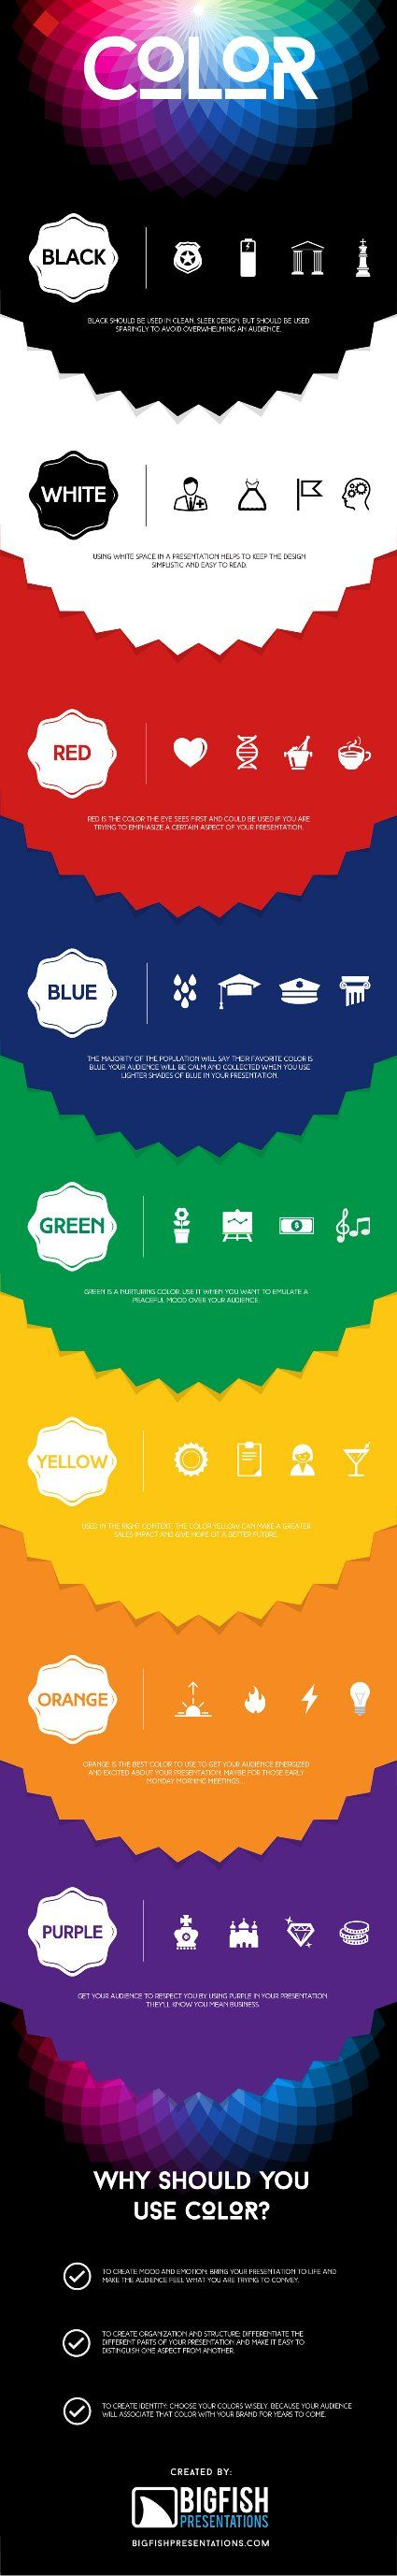 Colors web design psychology - The Psychology Of Color In Presentations